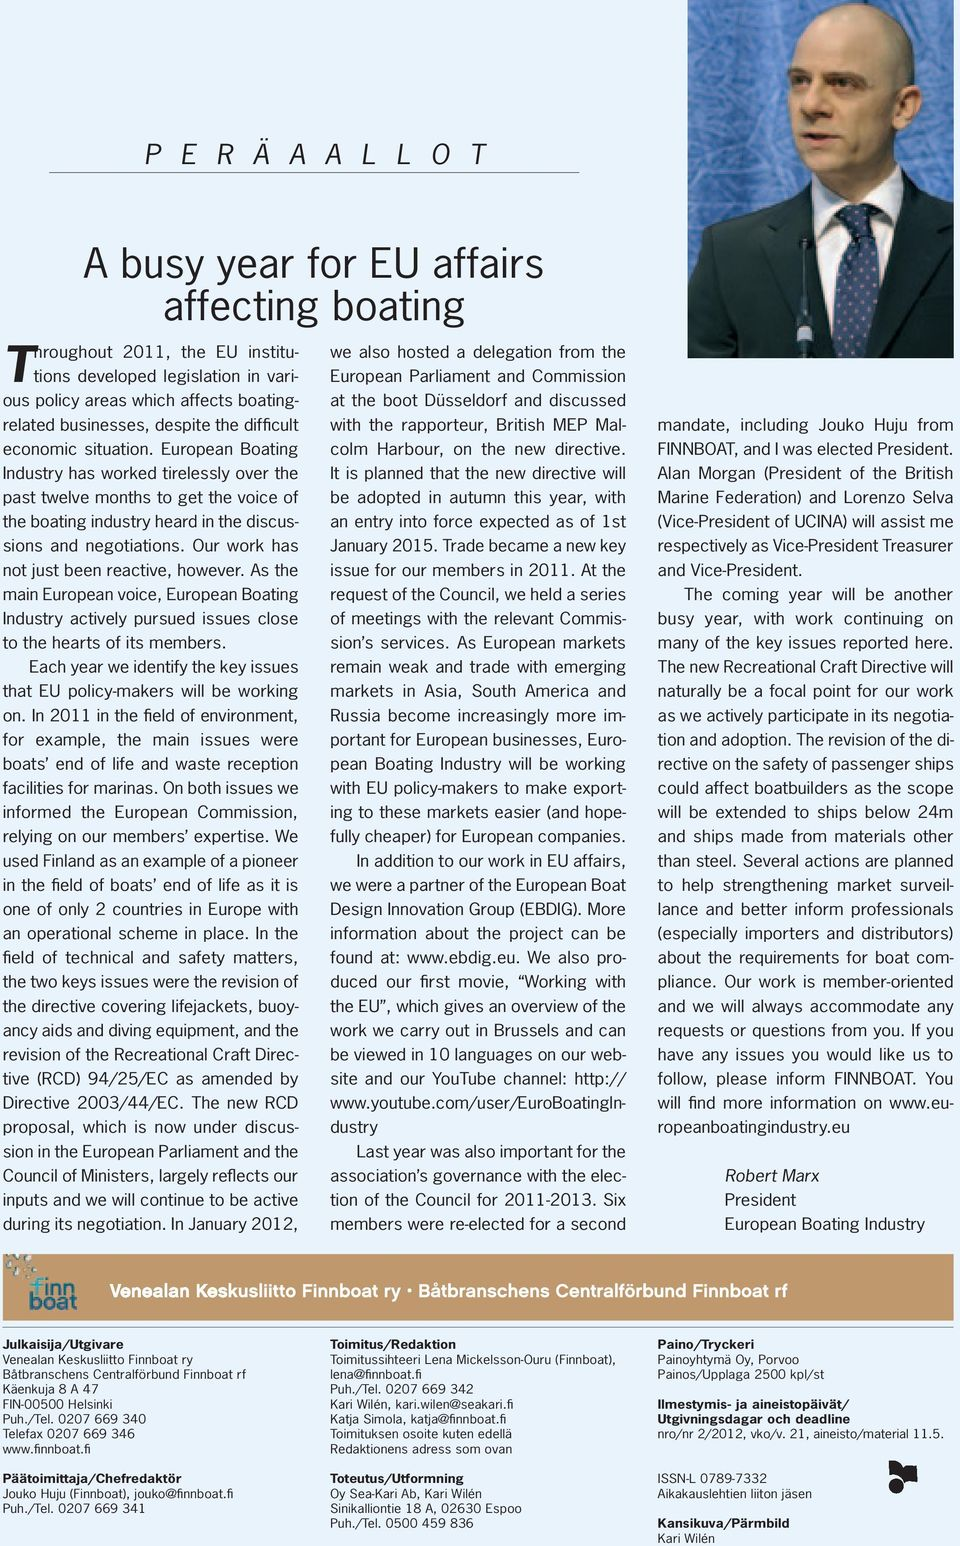 Our work has not just been reactive, however. As the main European voice, European Boating Industry actively pursued issues close to the hearts of its members.